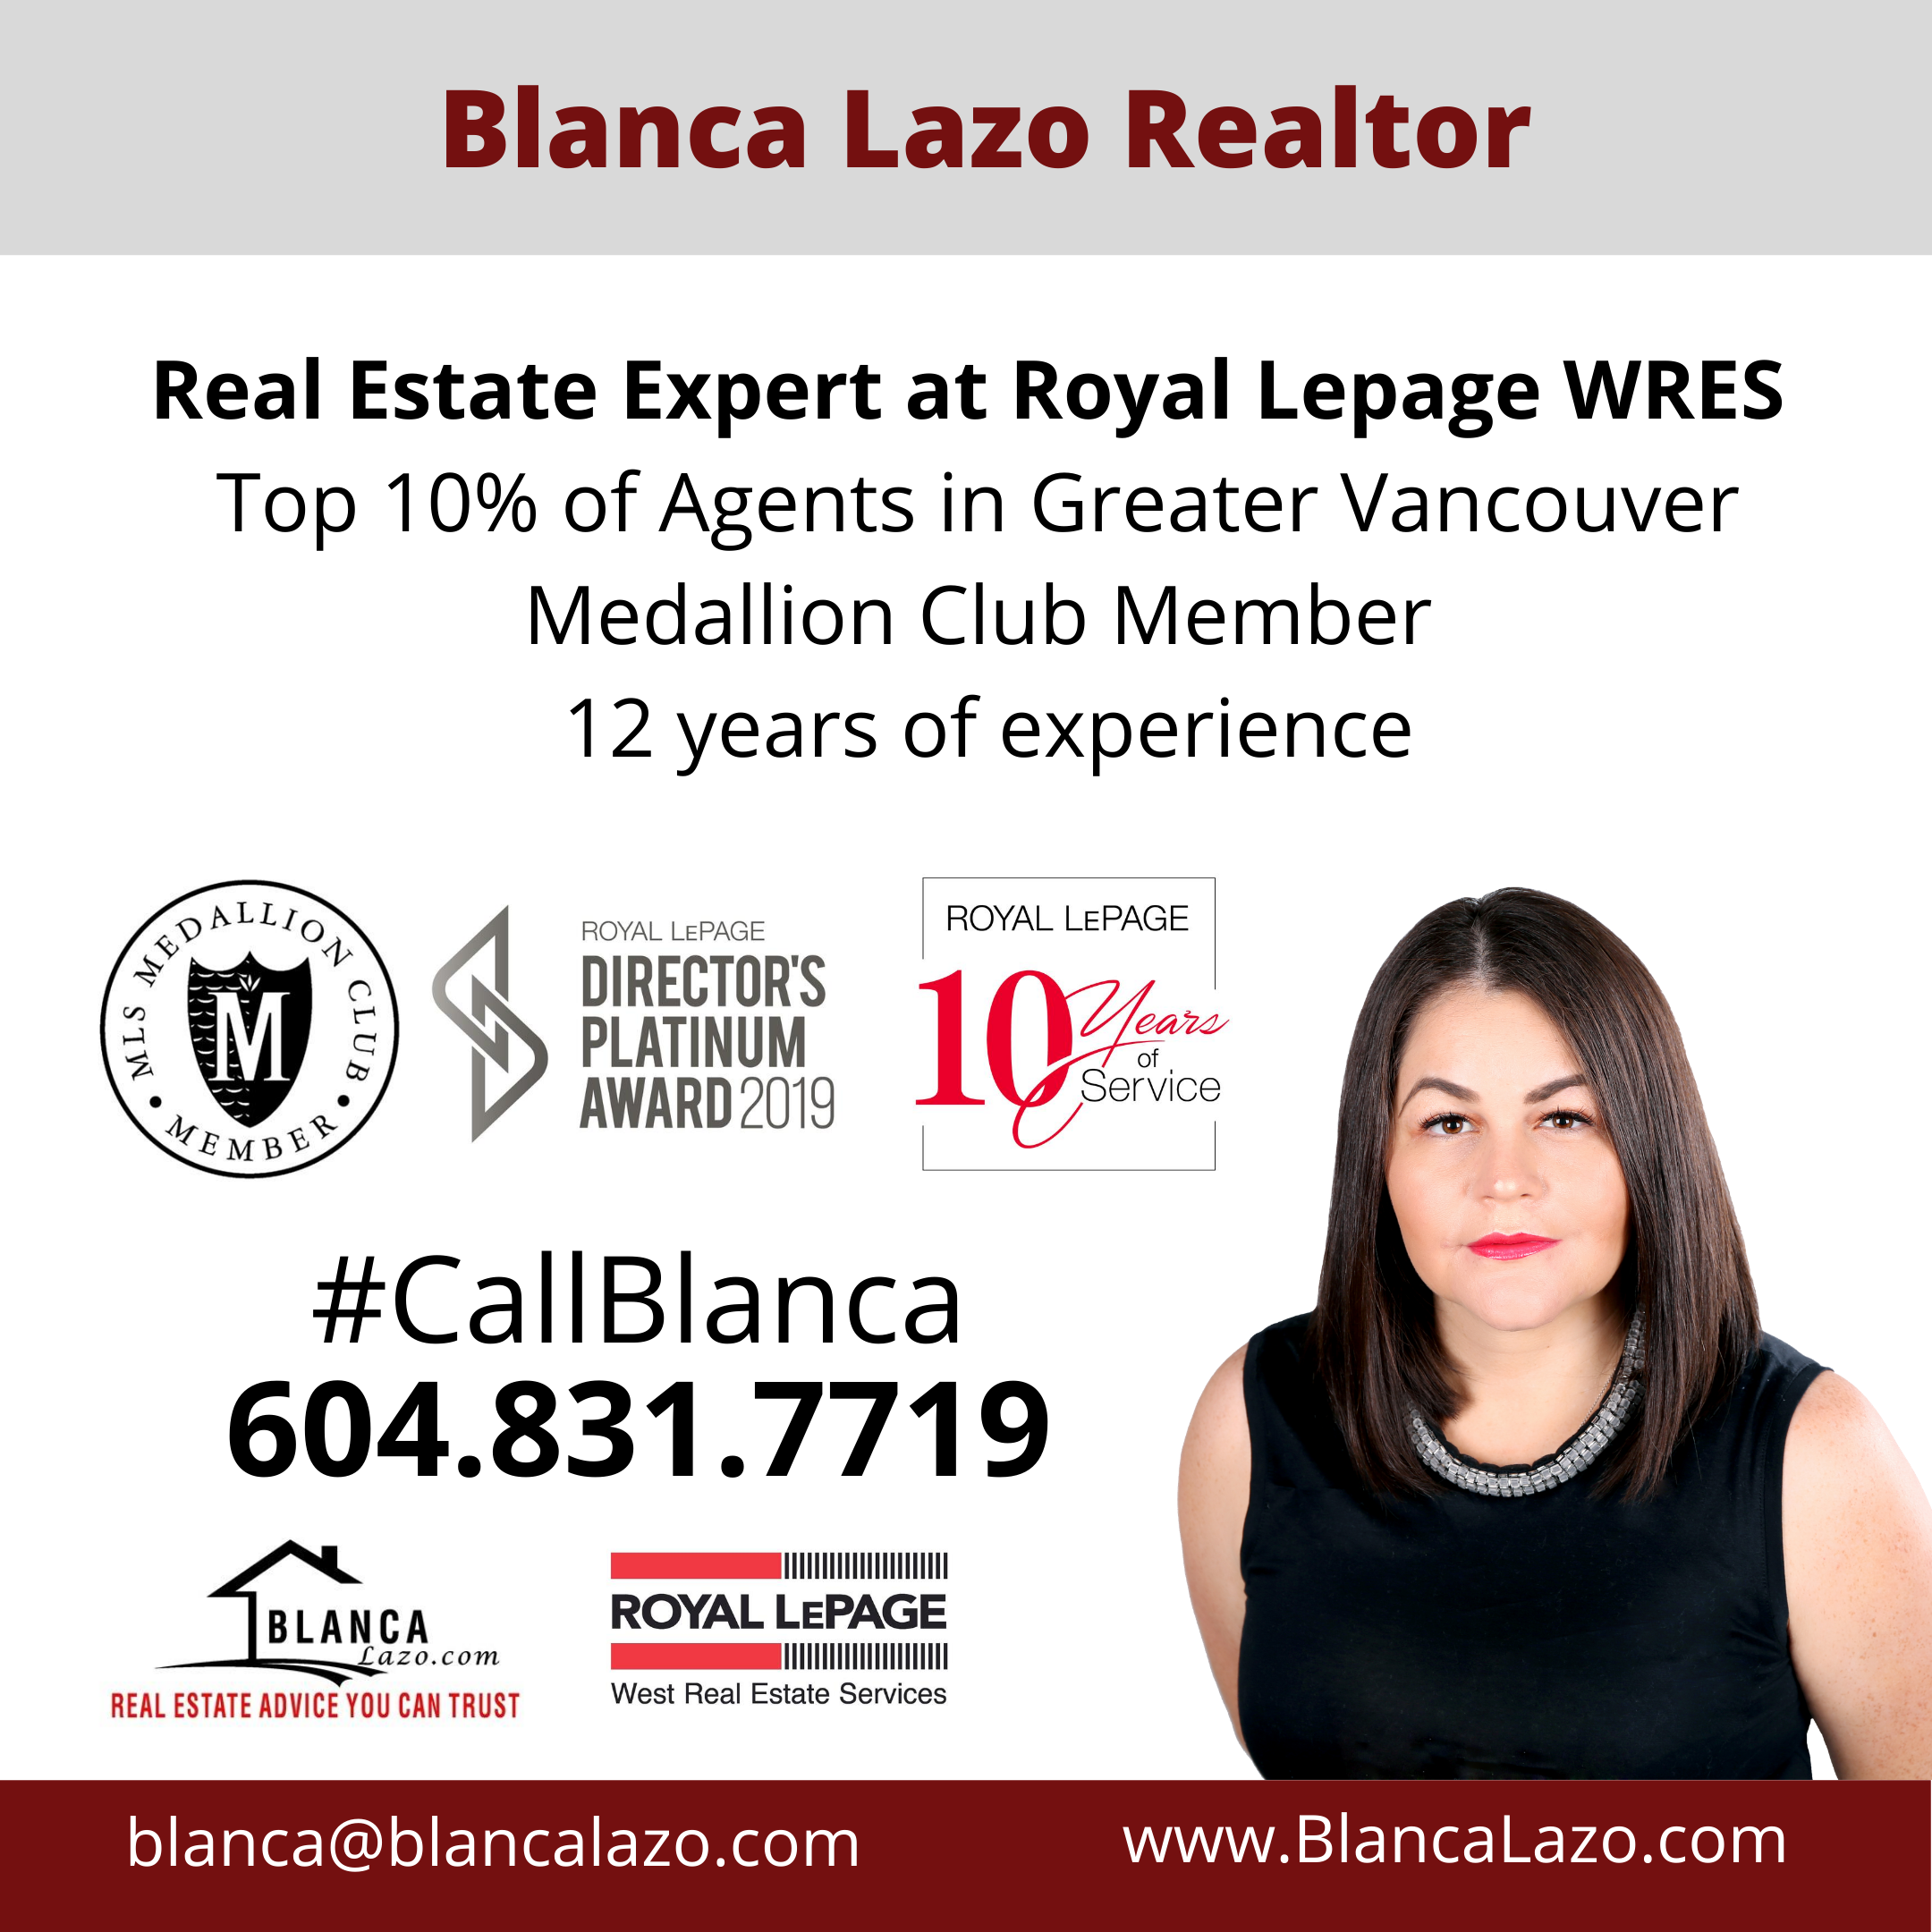 blanca lazo realtor description